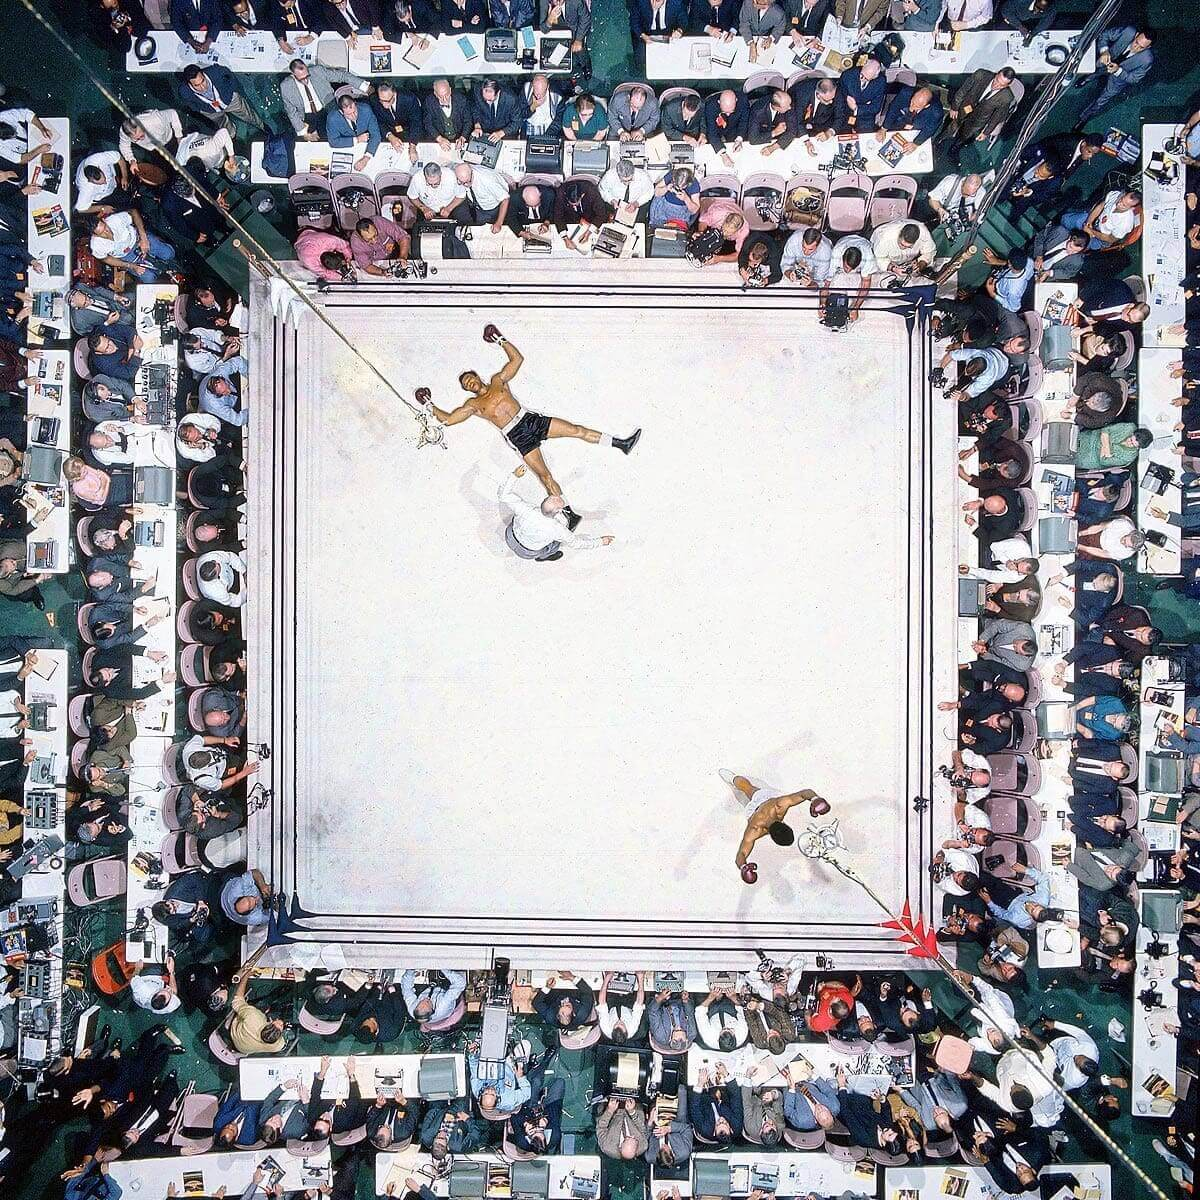 Great Sports Images - Muhammad Ali Stands Victorious After Knocking Out 'Big Cat' Williams - Neil Leifer